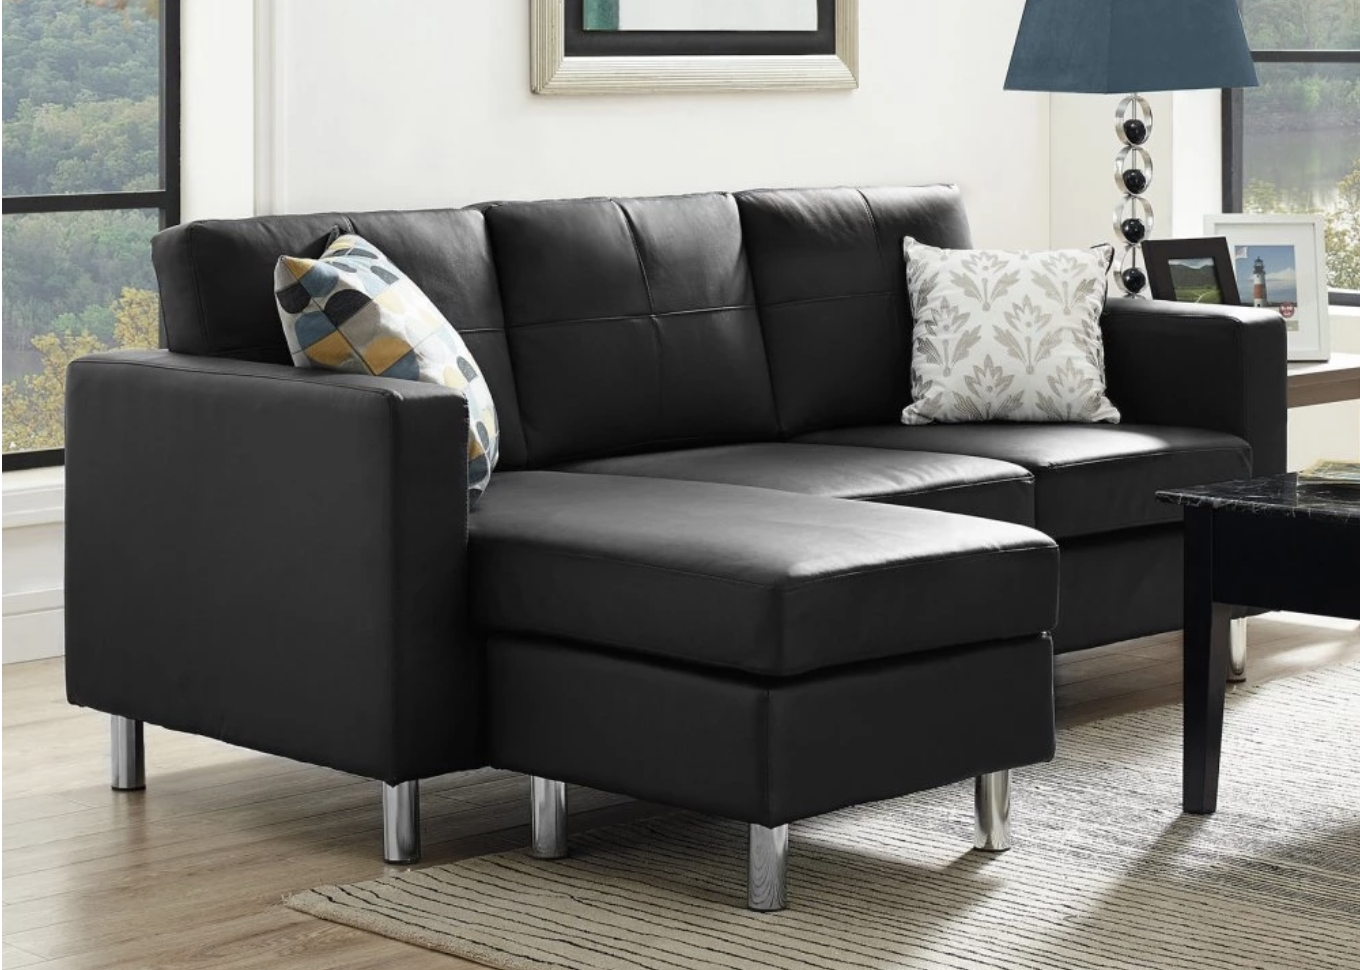 75 Modern Sectional Sofas For Small Spaces (2018) intended for 100X100 Sectional Sofas